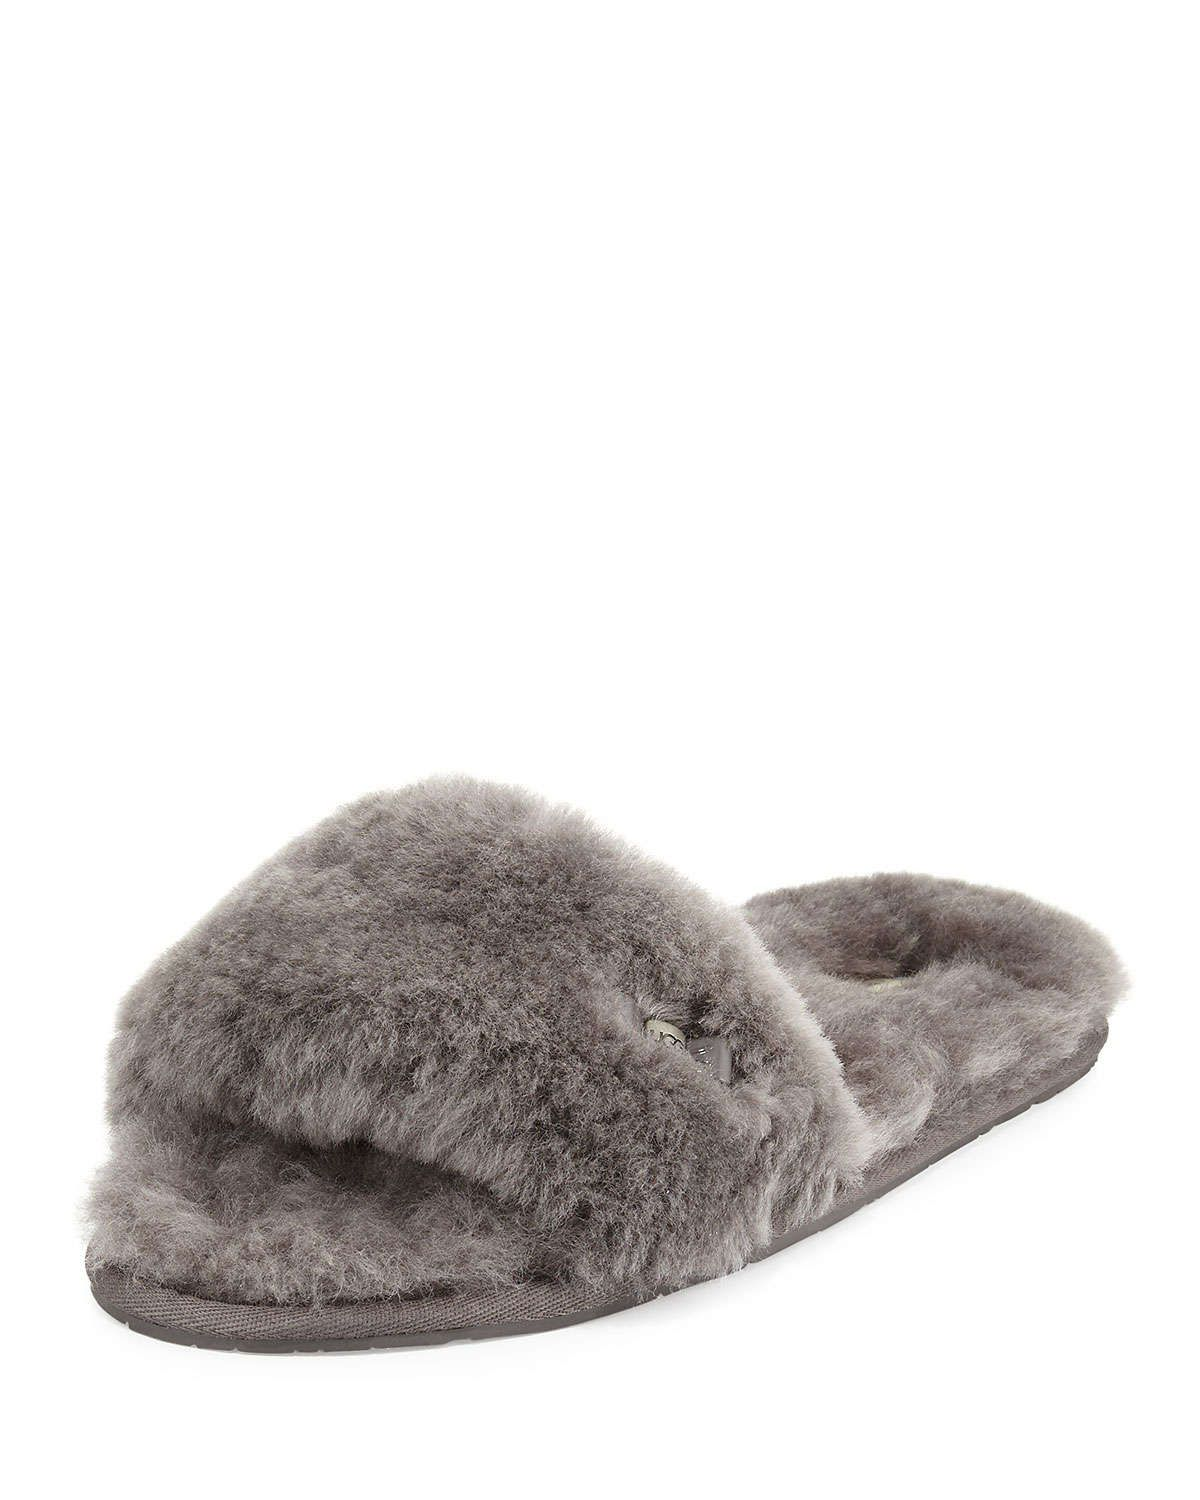 UGG Fluff Shearling Fur Slide Slipper, Gray